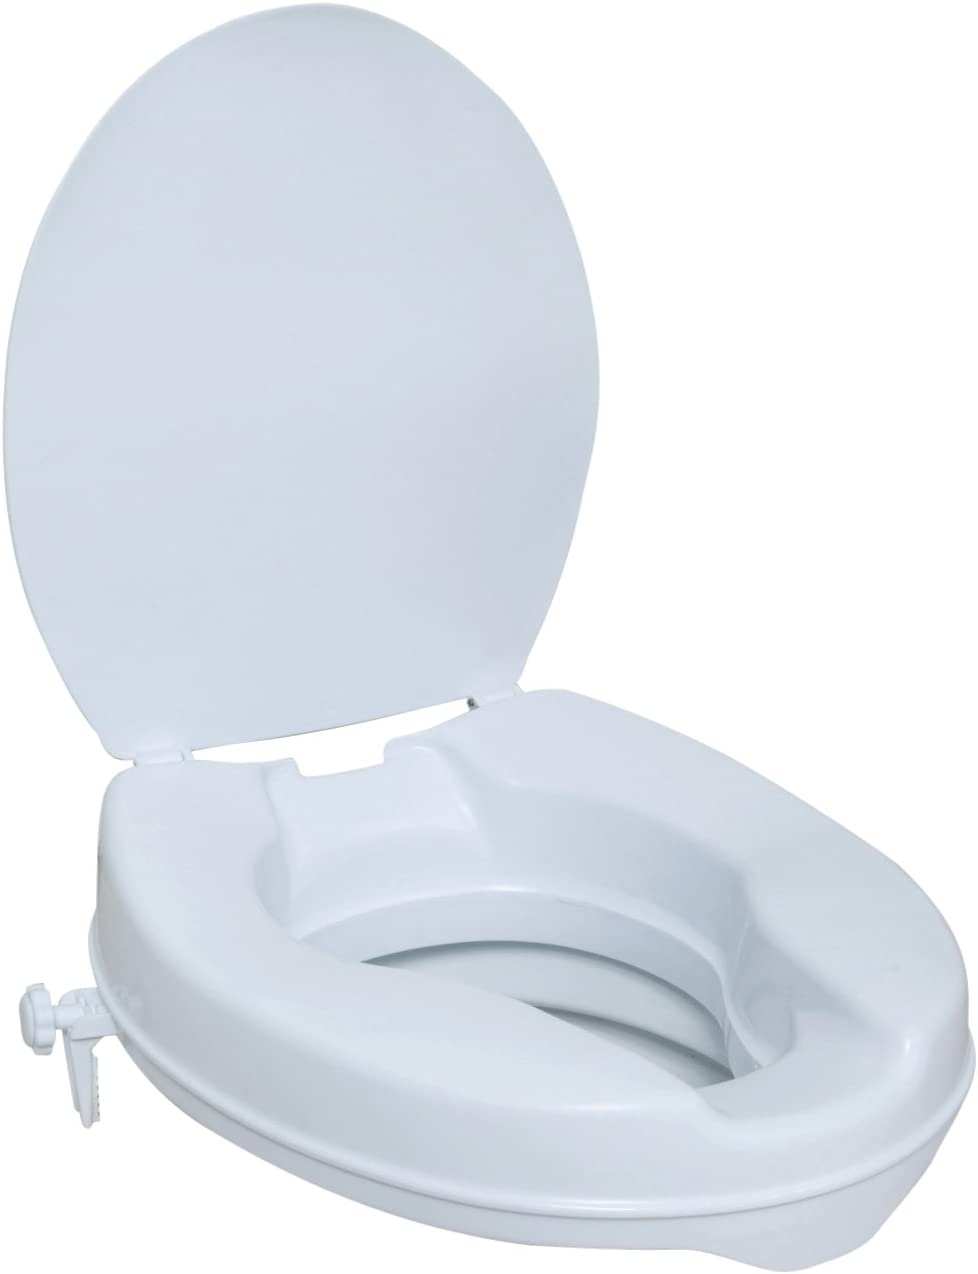 NRS Healthcare M11132 Stanton Raised Toilet Seat with Lid - 10 cm (4 Inch) Height